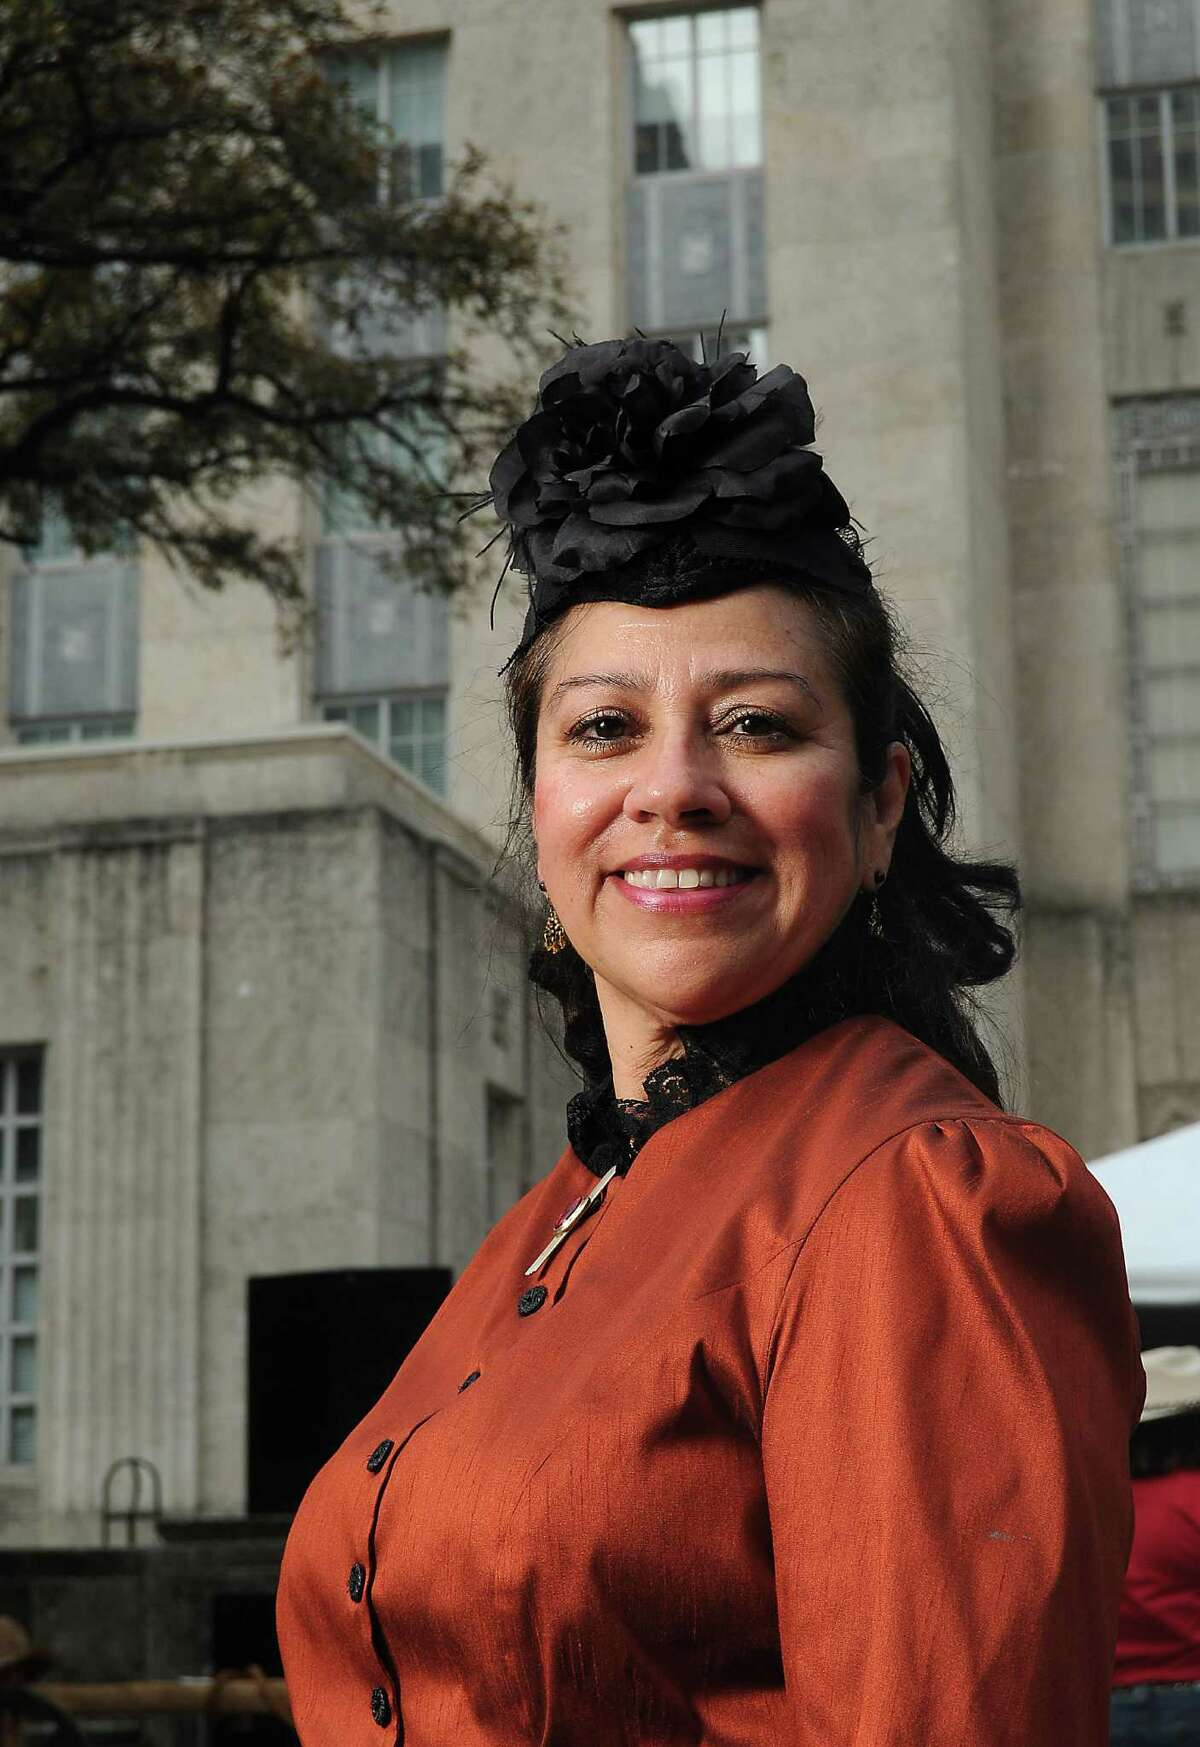 Linda Alonzo Saenz serves on the Ladies' Go Texan Committee, the Go Tejano Committee and in the History Live program, part of the Speakers Committee, for the Houston Livestock Show and Rodeo.